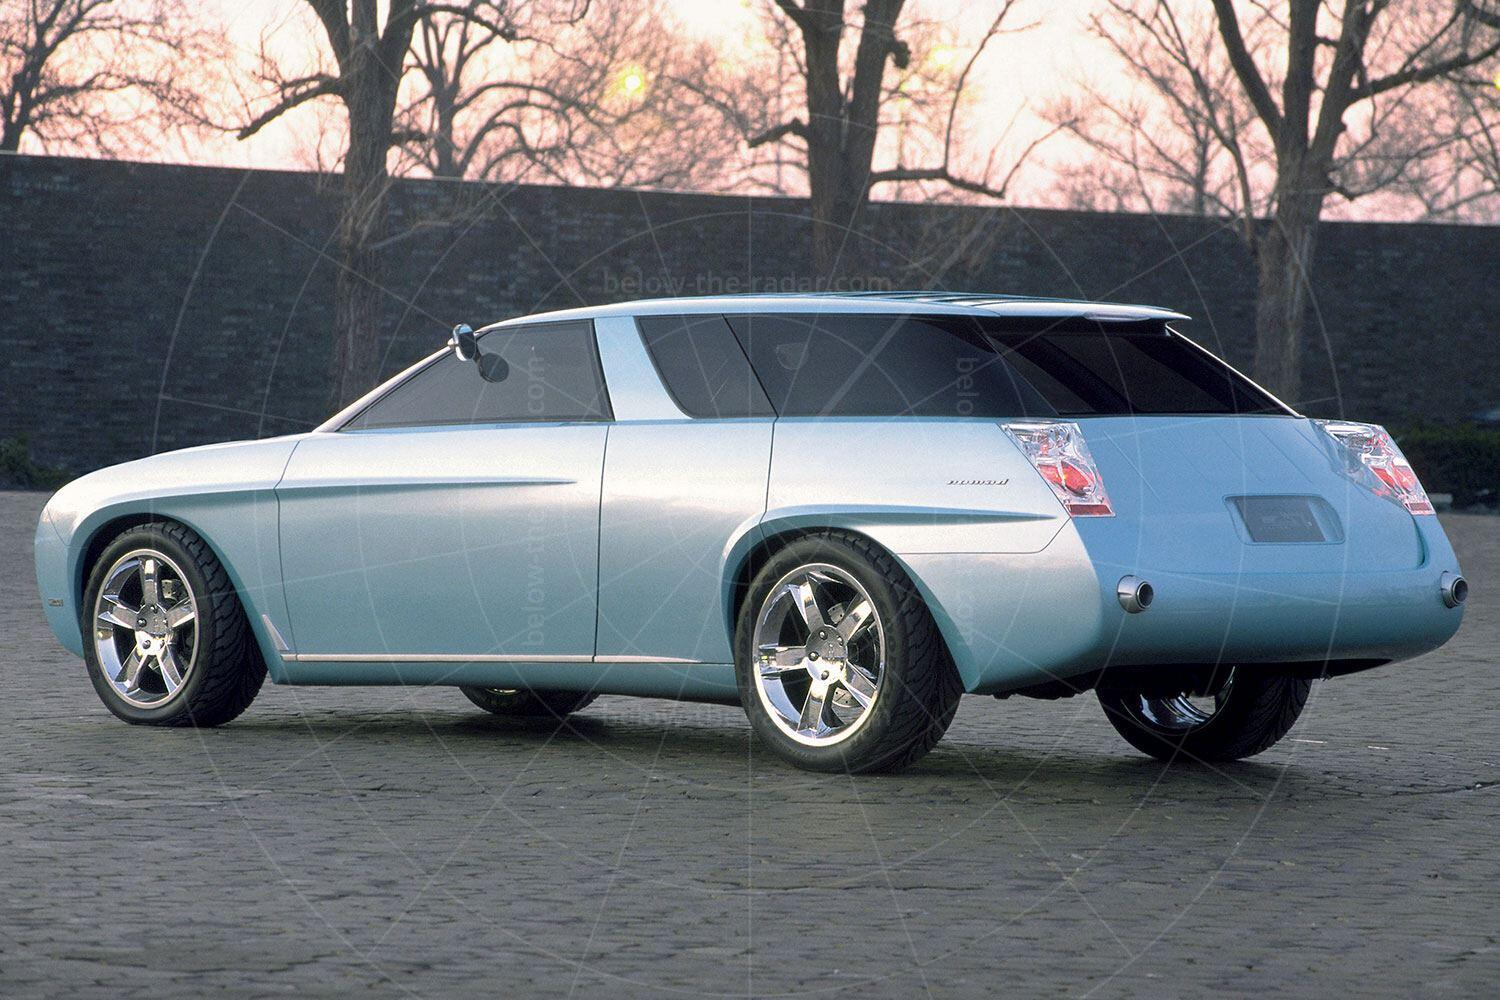 The 1999 Chevrolet Nomad concept Pic: GM | The 1999 Chevrolet Nomad concept